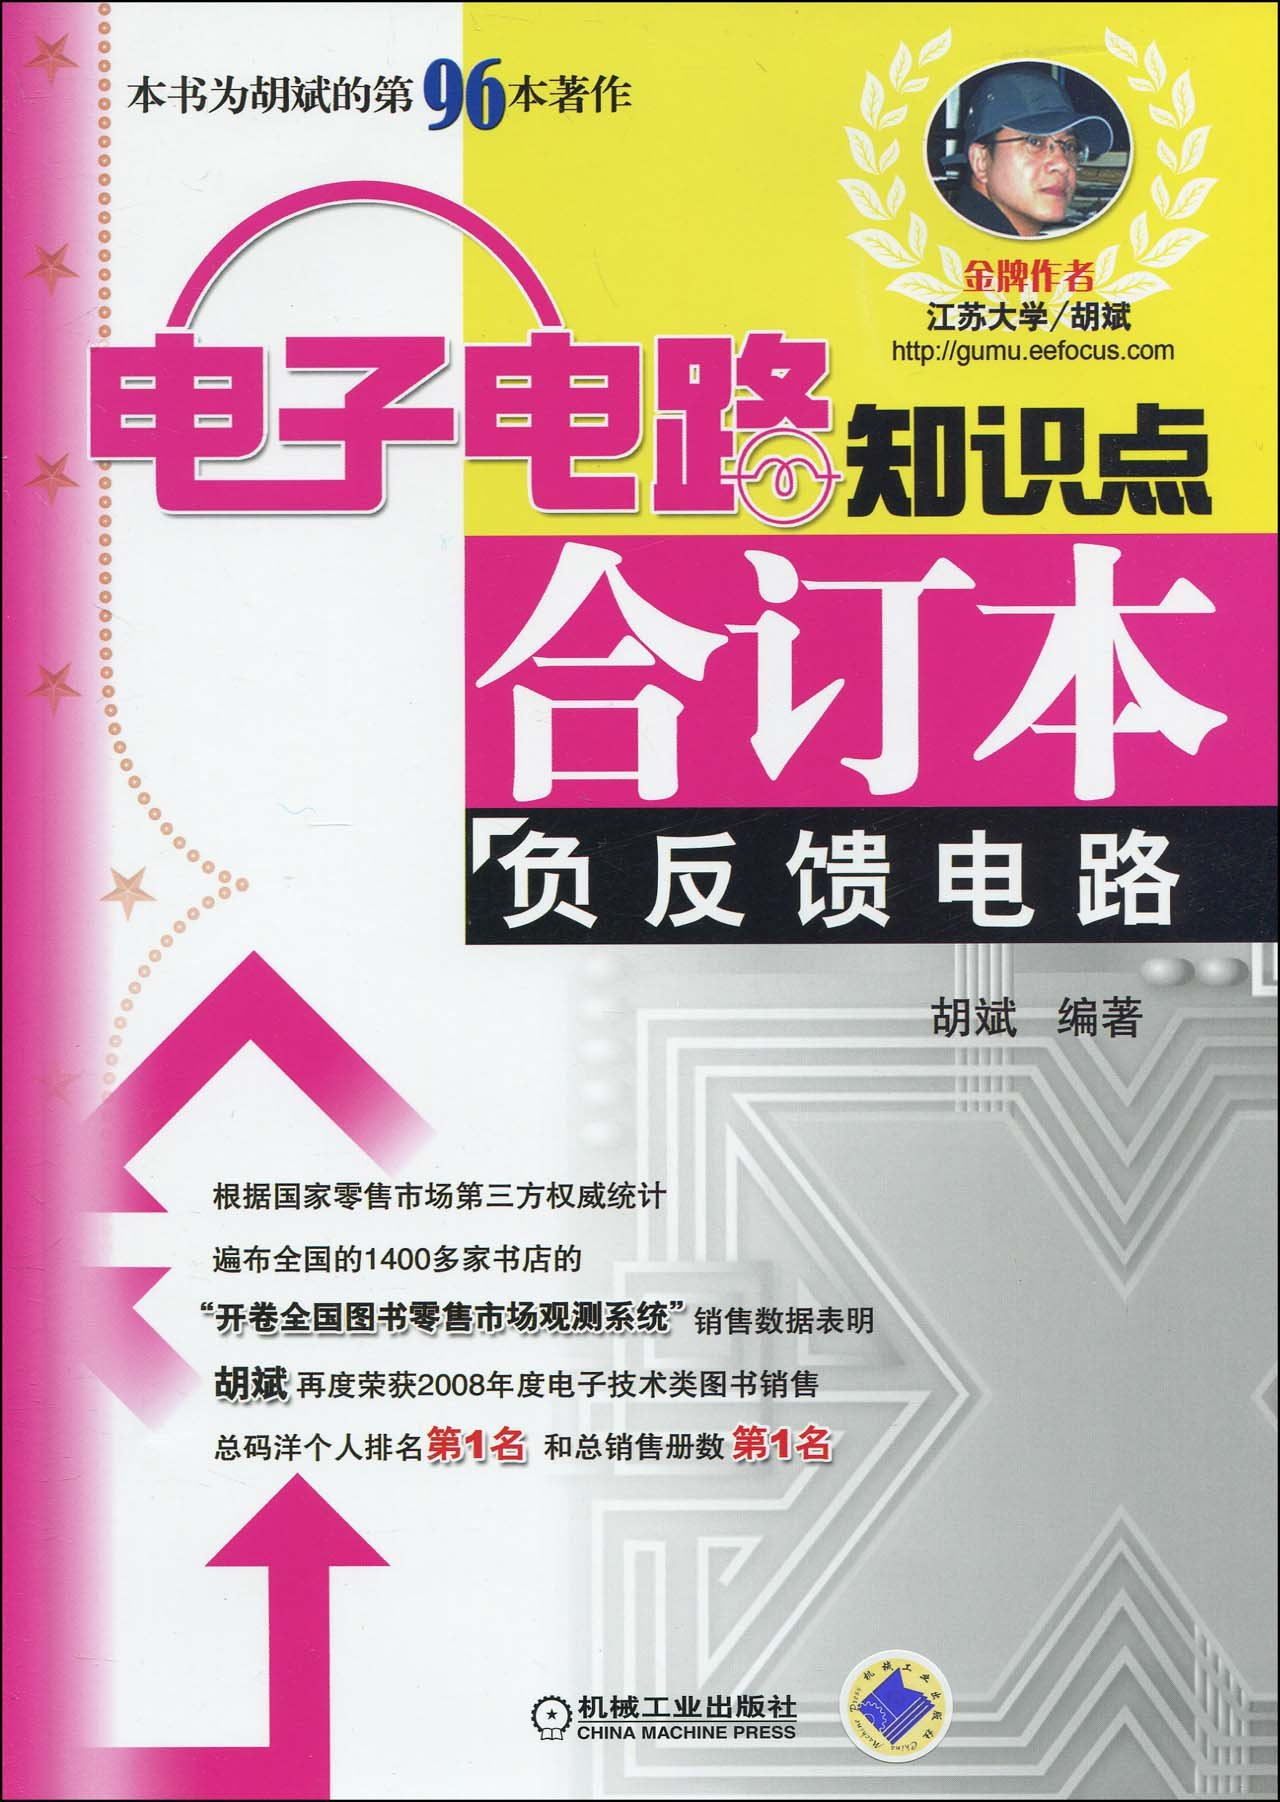 electronic circuit knowledge bound volume a negative feedbackelectronic circuit knowledge bound volume a negative feedback circuit(chinese edition) (chinese) paperback \u2013 january 1, 2010